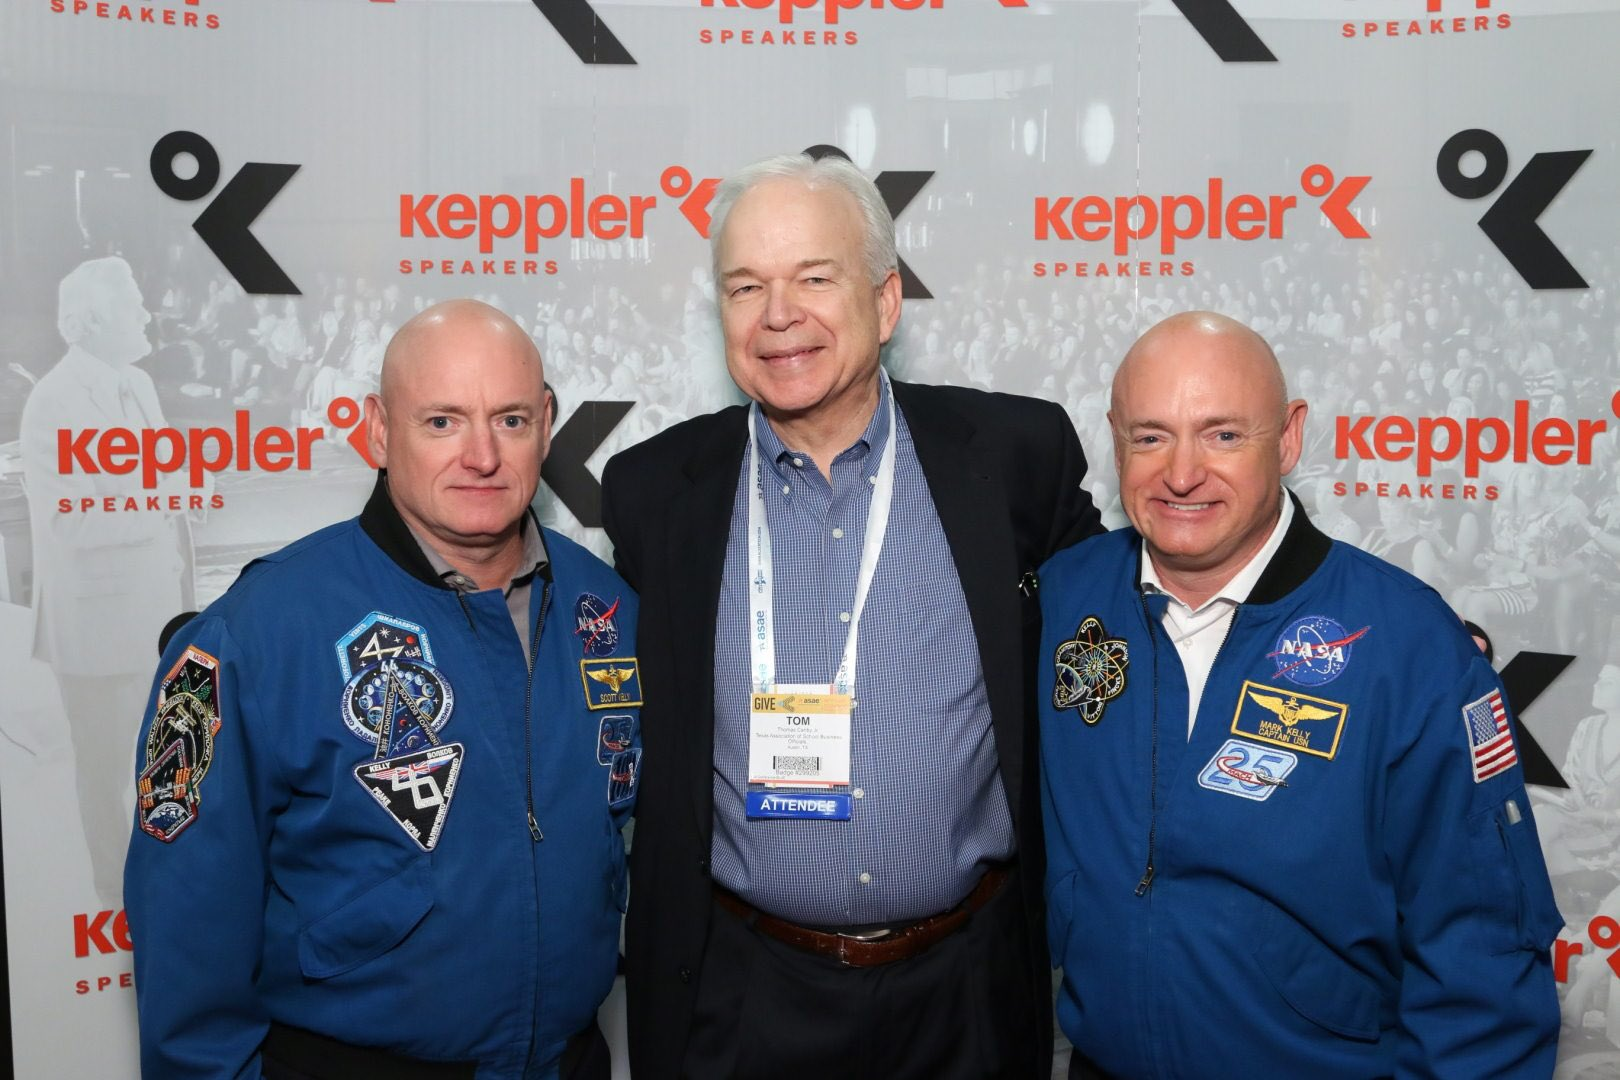 Great presentation at #ASAE16 by Captains Mark and Scott Kelly. Thank you for contributions to space exploration! https://t.co/ukEs2AeTvw